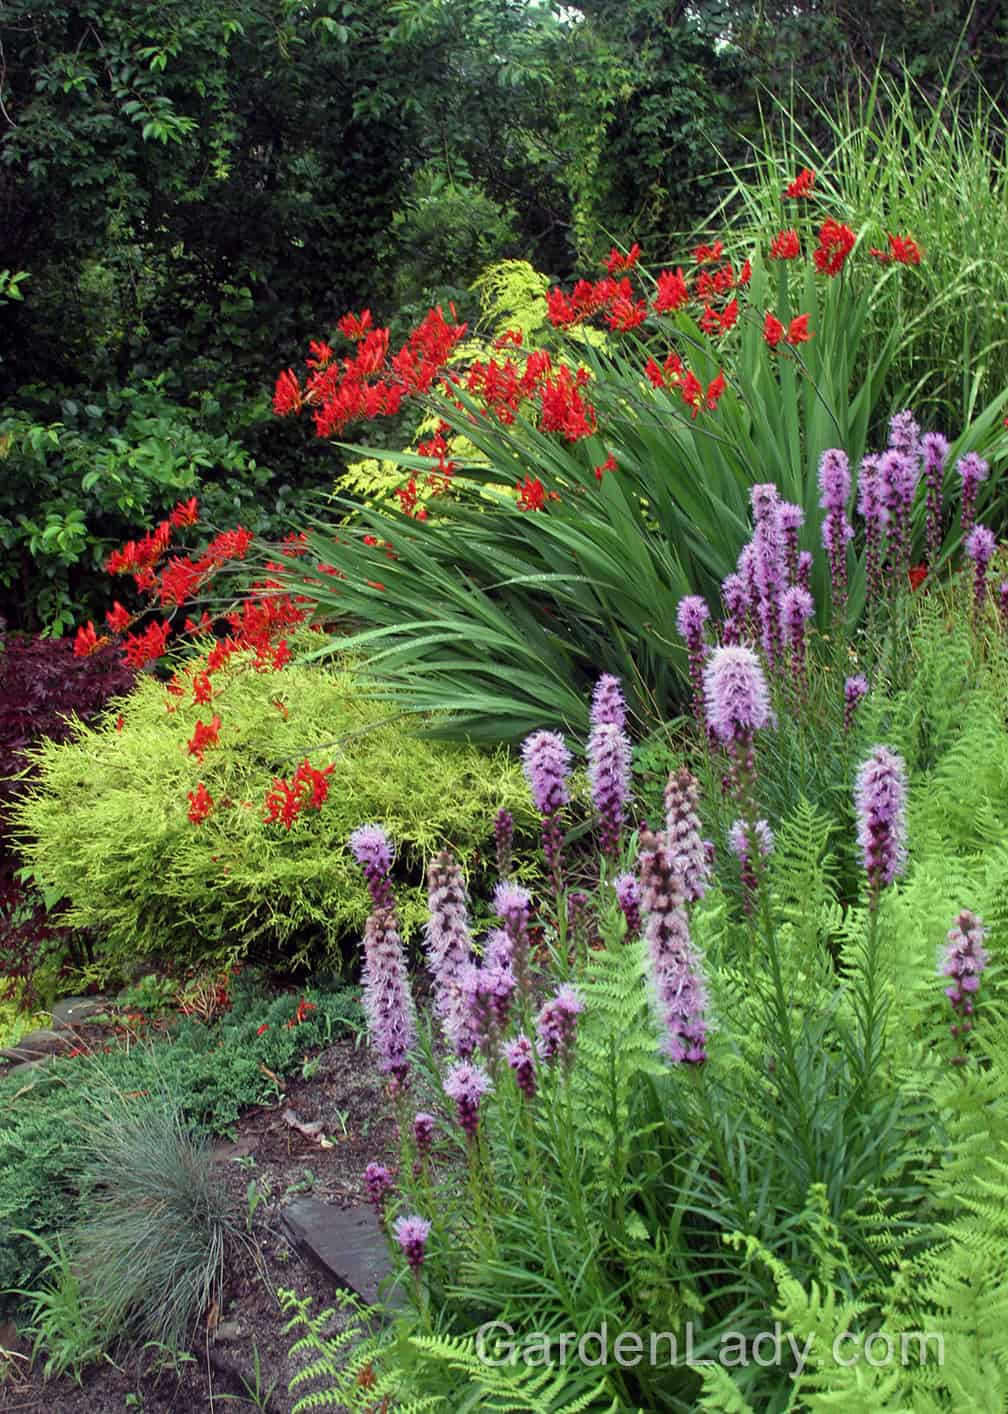 The bright red 'Lucifer' flowers are a natural with yellows and purples. In this planting the Liatris is in flower at the same time, making a winning garden combo.